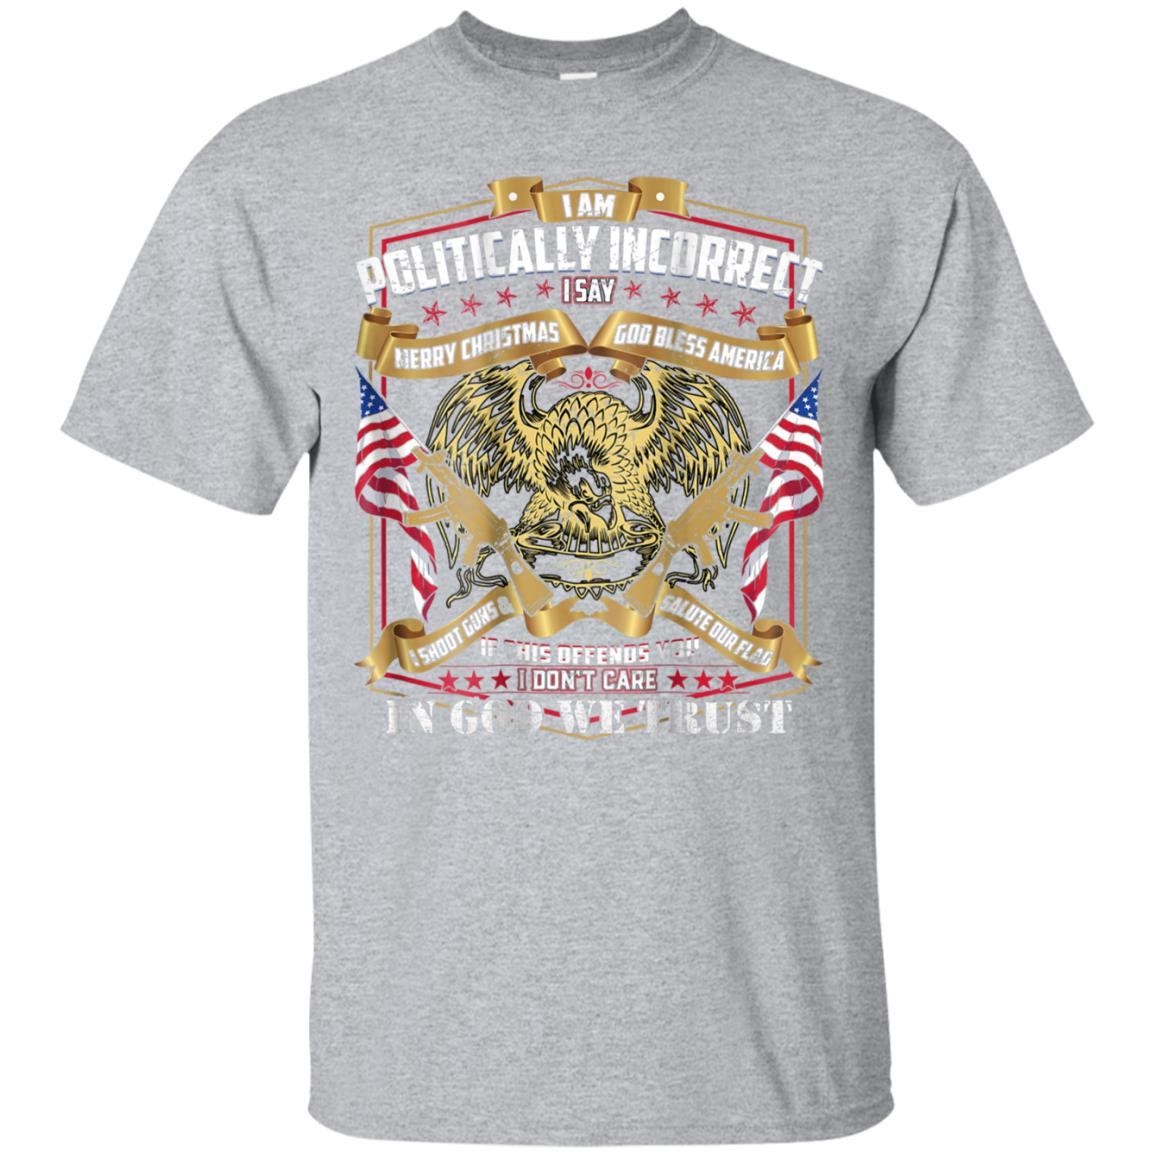 (Print On Back) Politically Incorrect Conservative Tee shirt 99promocode